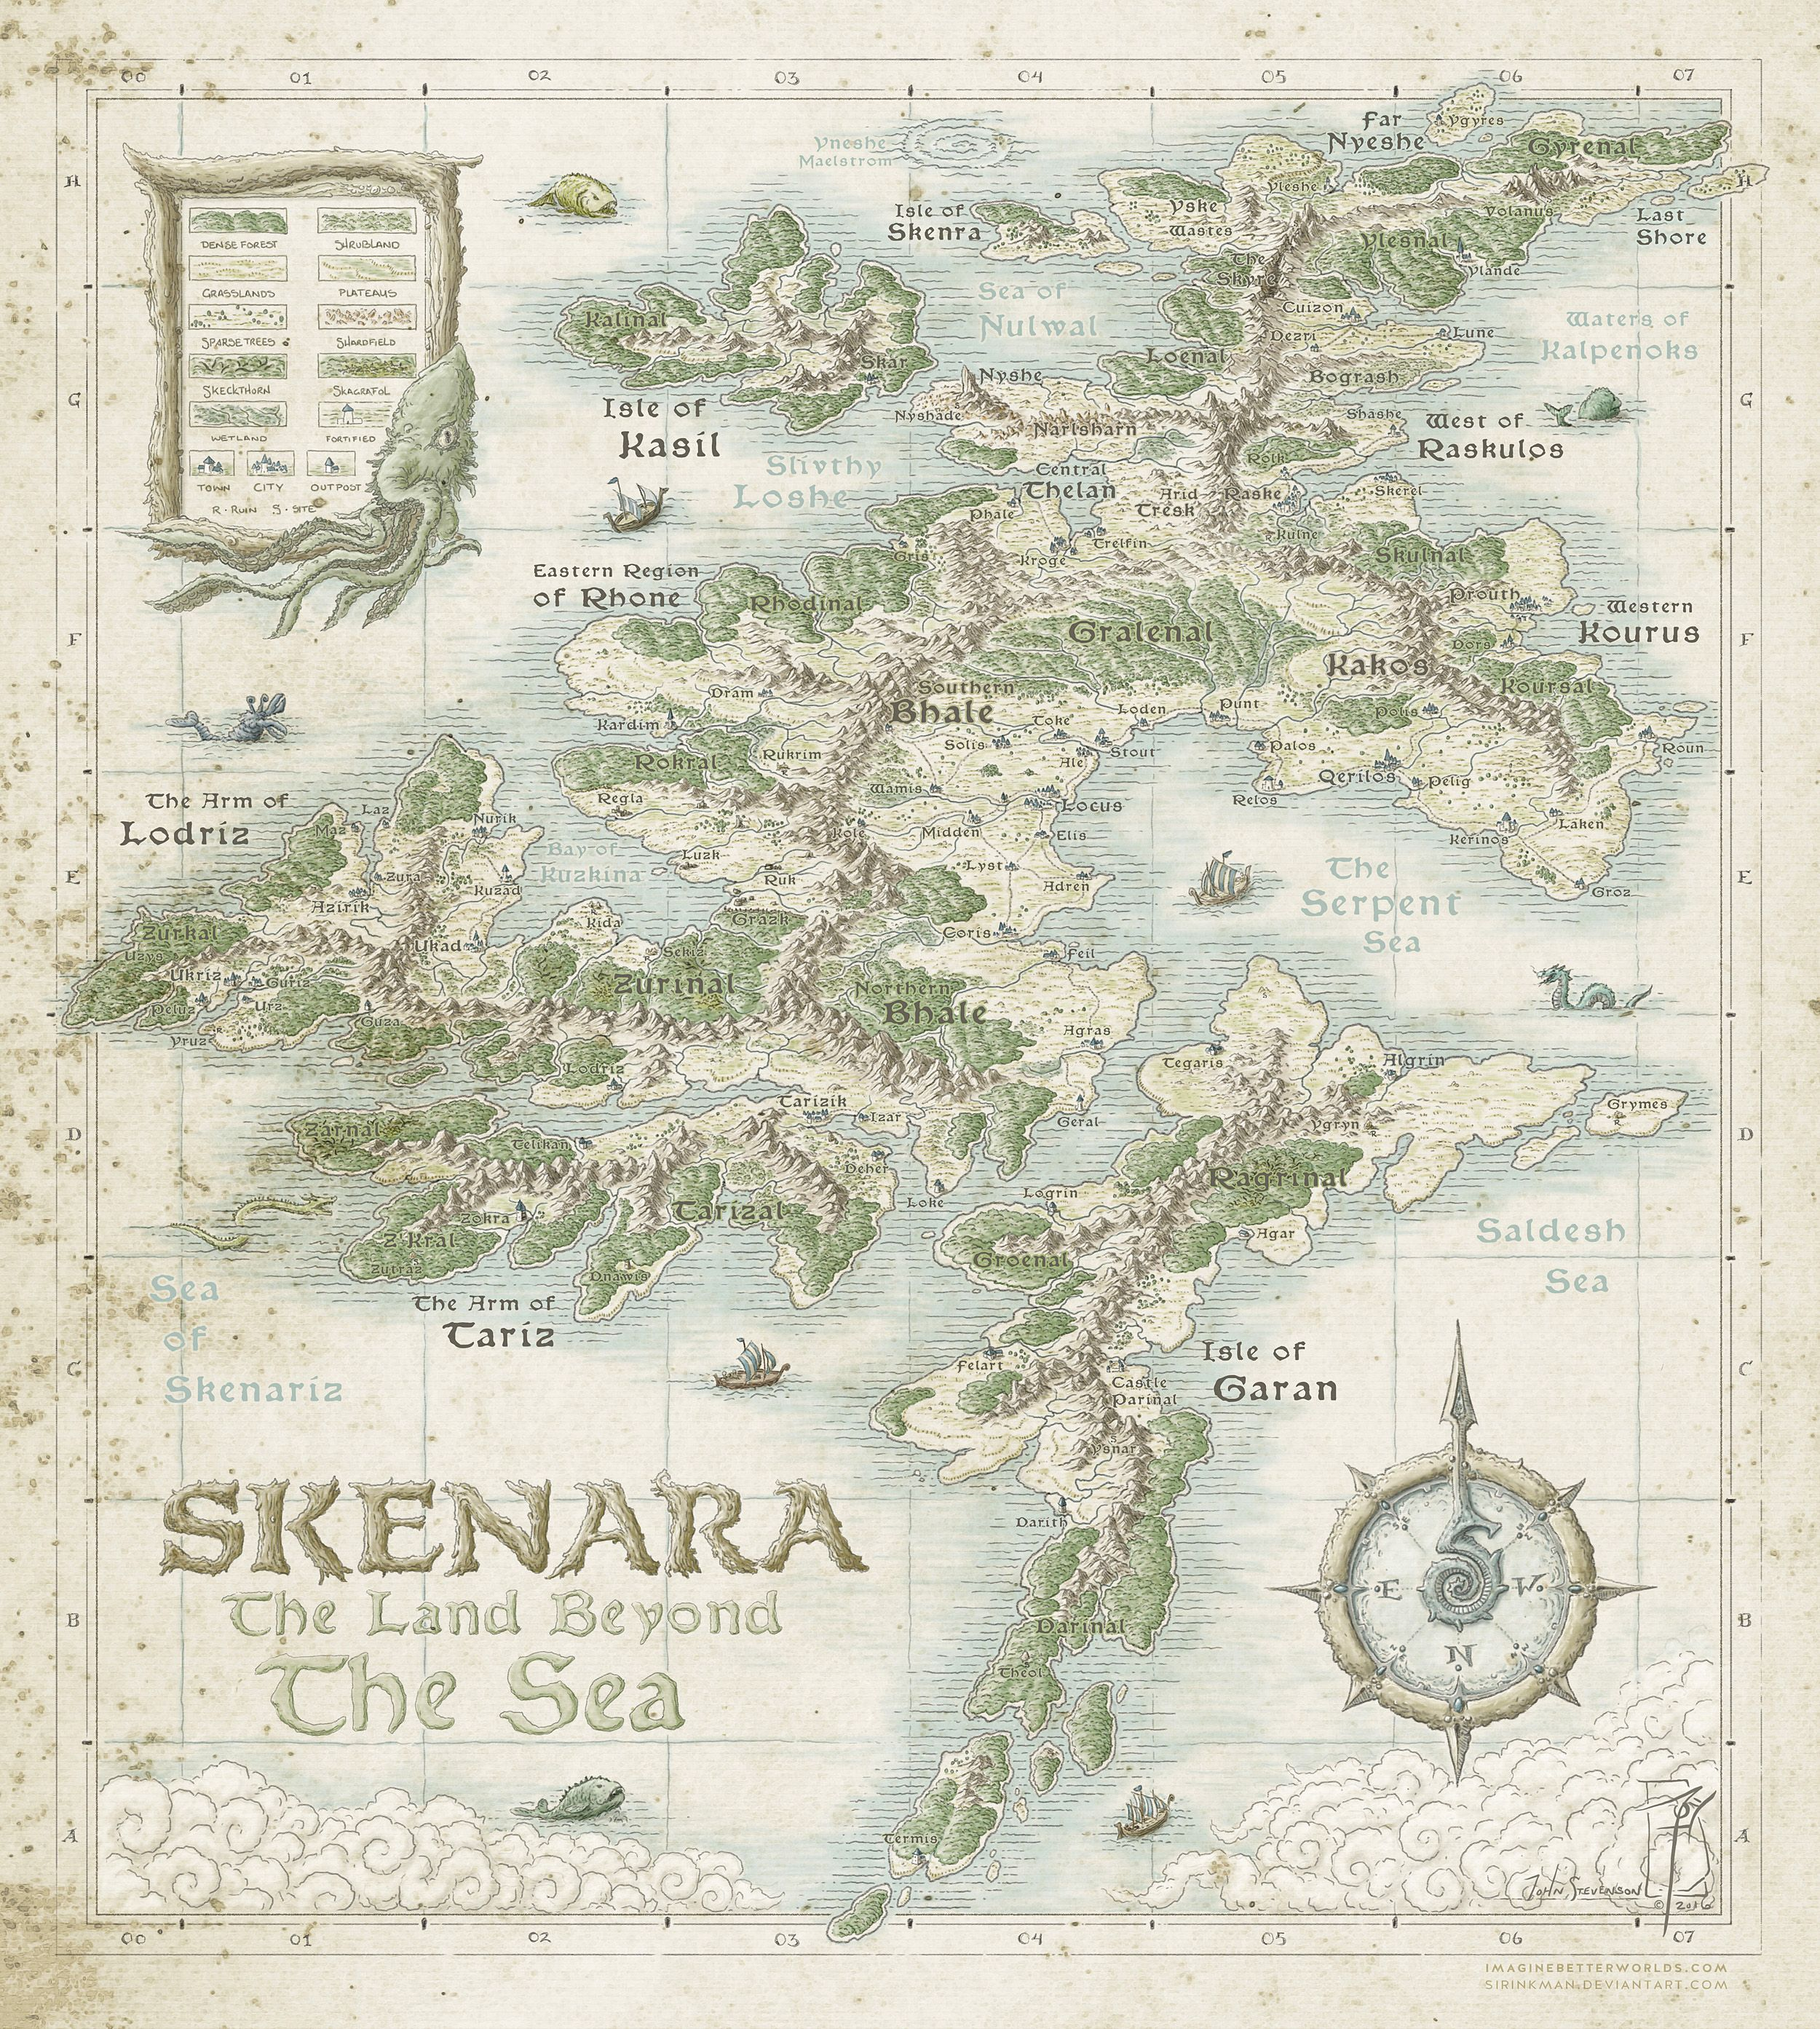 Skenara [Land Beyond the Sea] by SirInkman map cartography